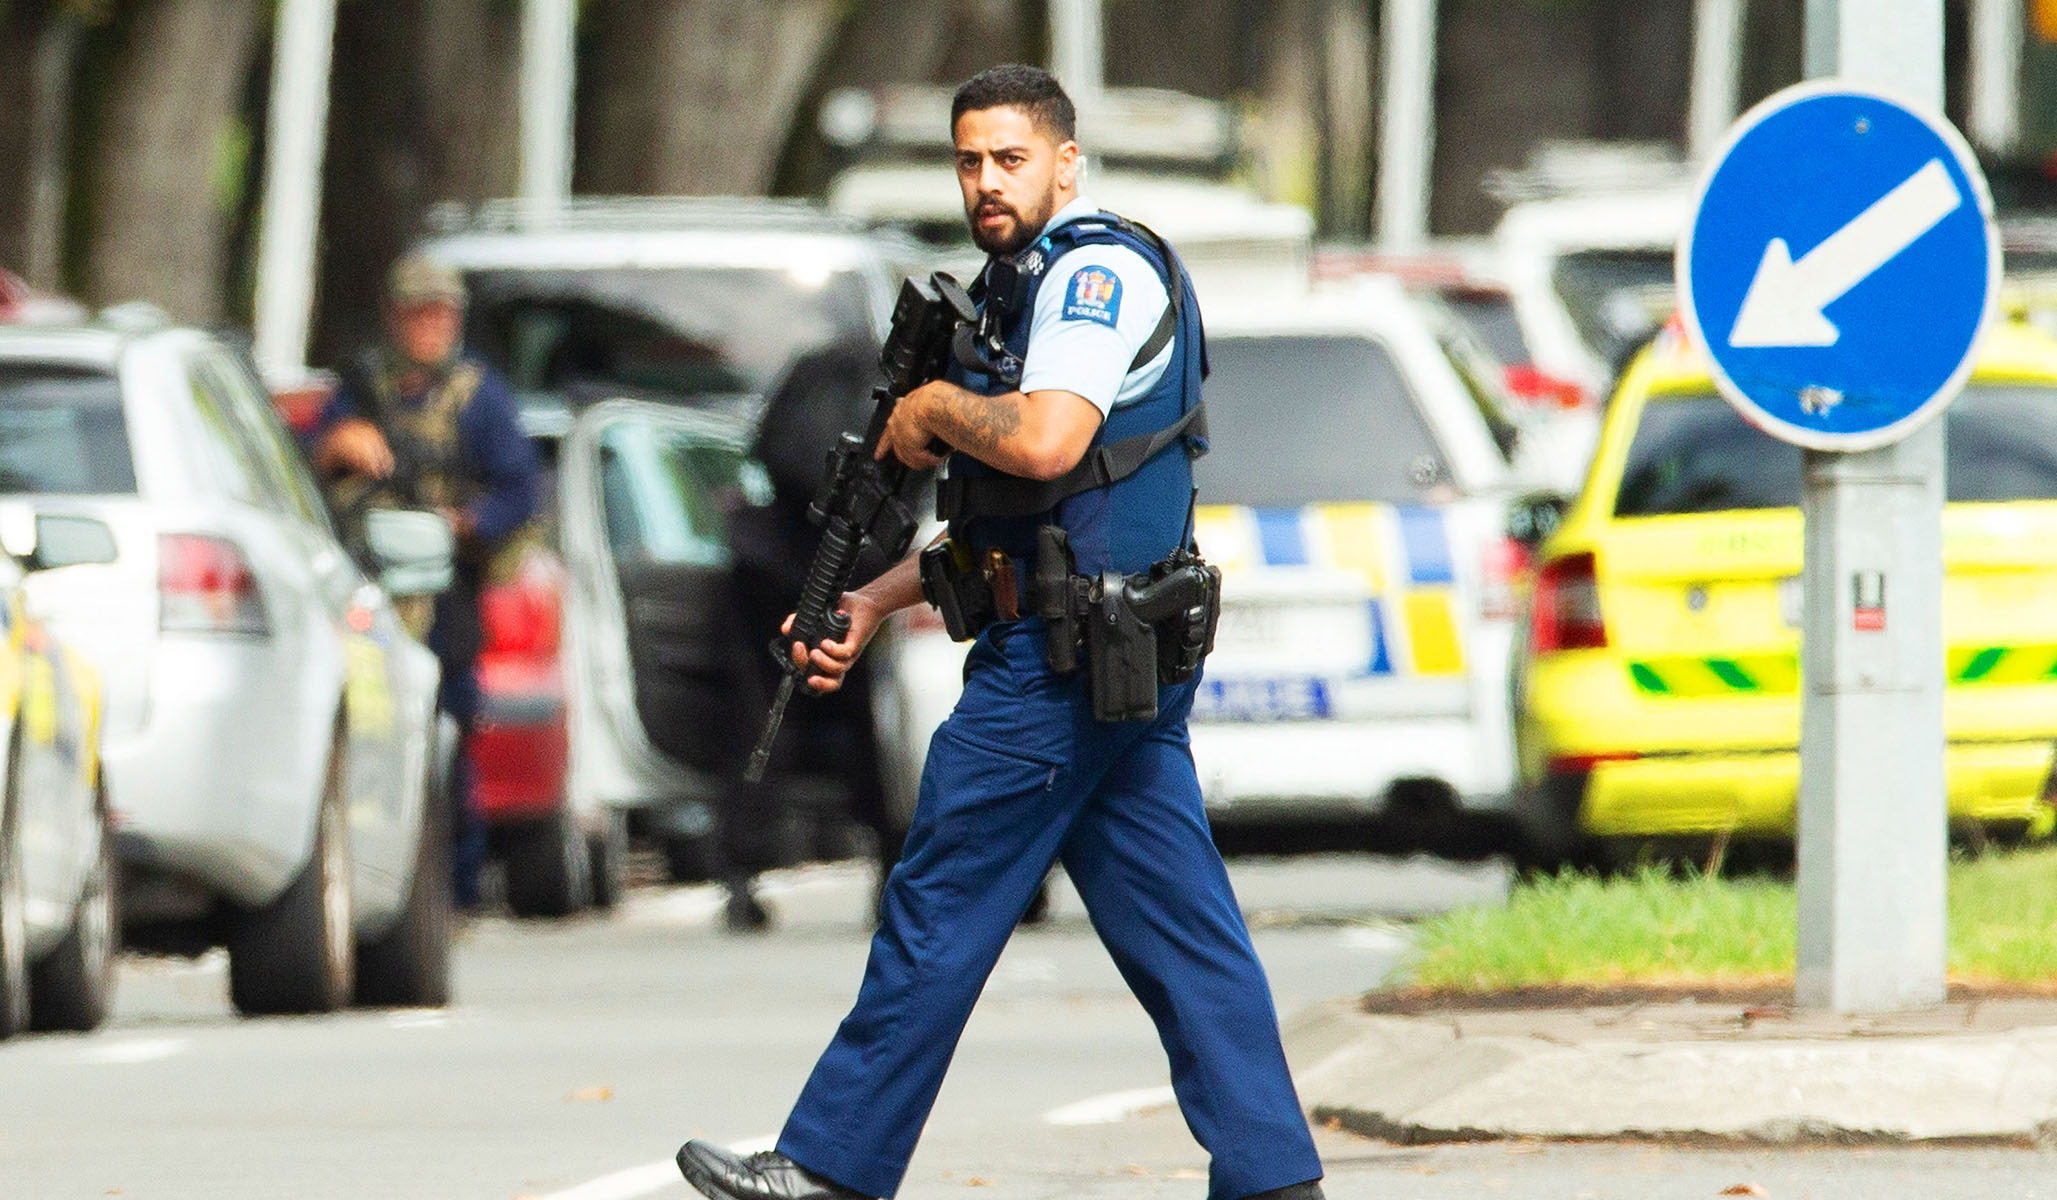 New Zealand Moves to Create Gun Registry in Response to Mosque Shootings